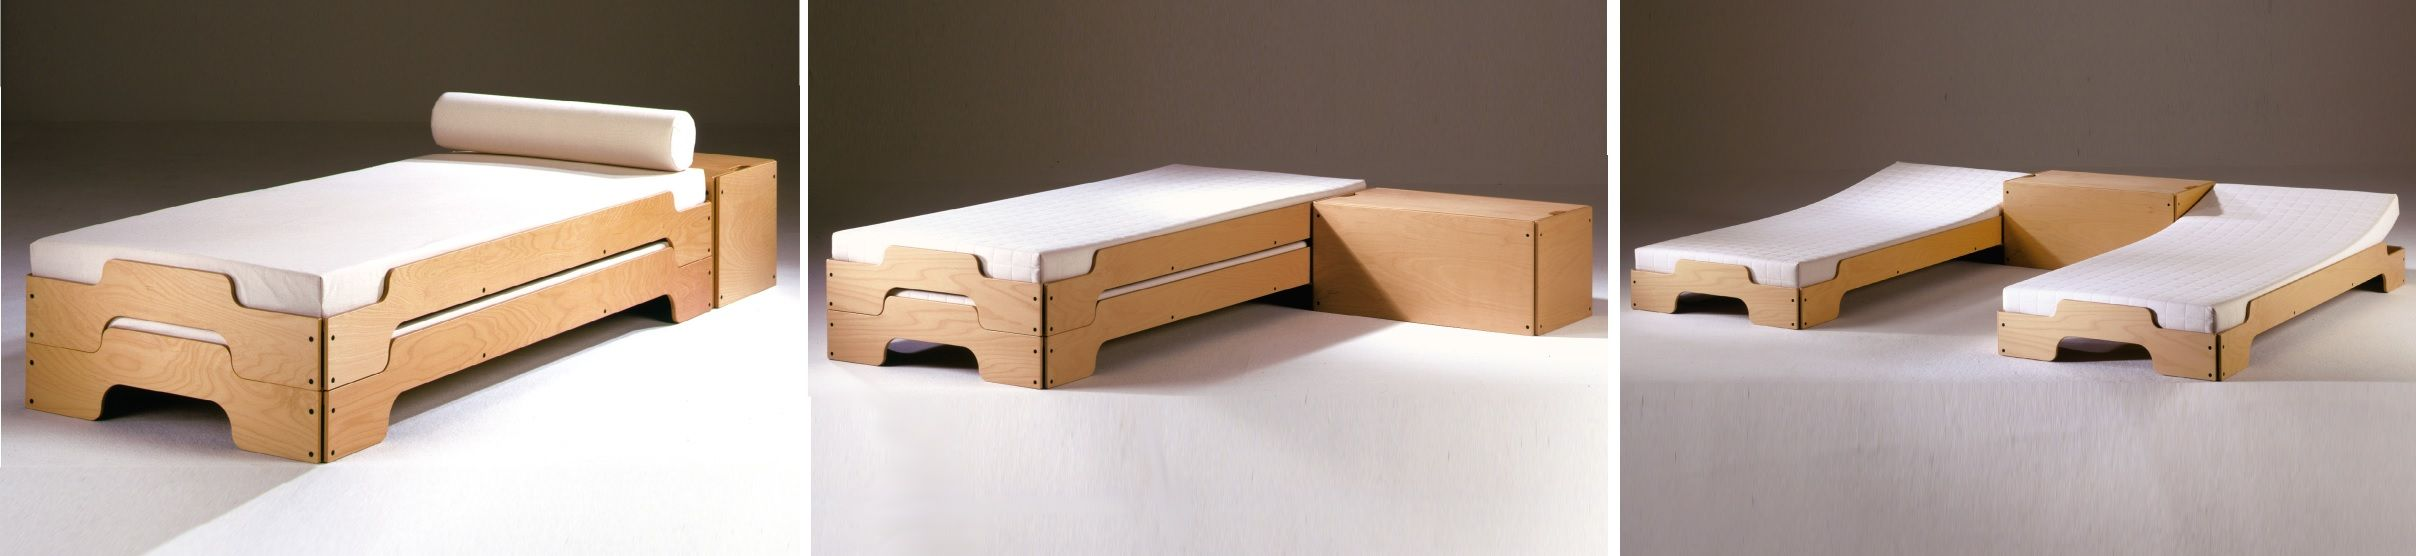 Stackable bed system